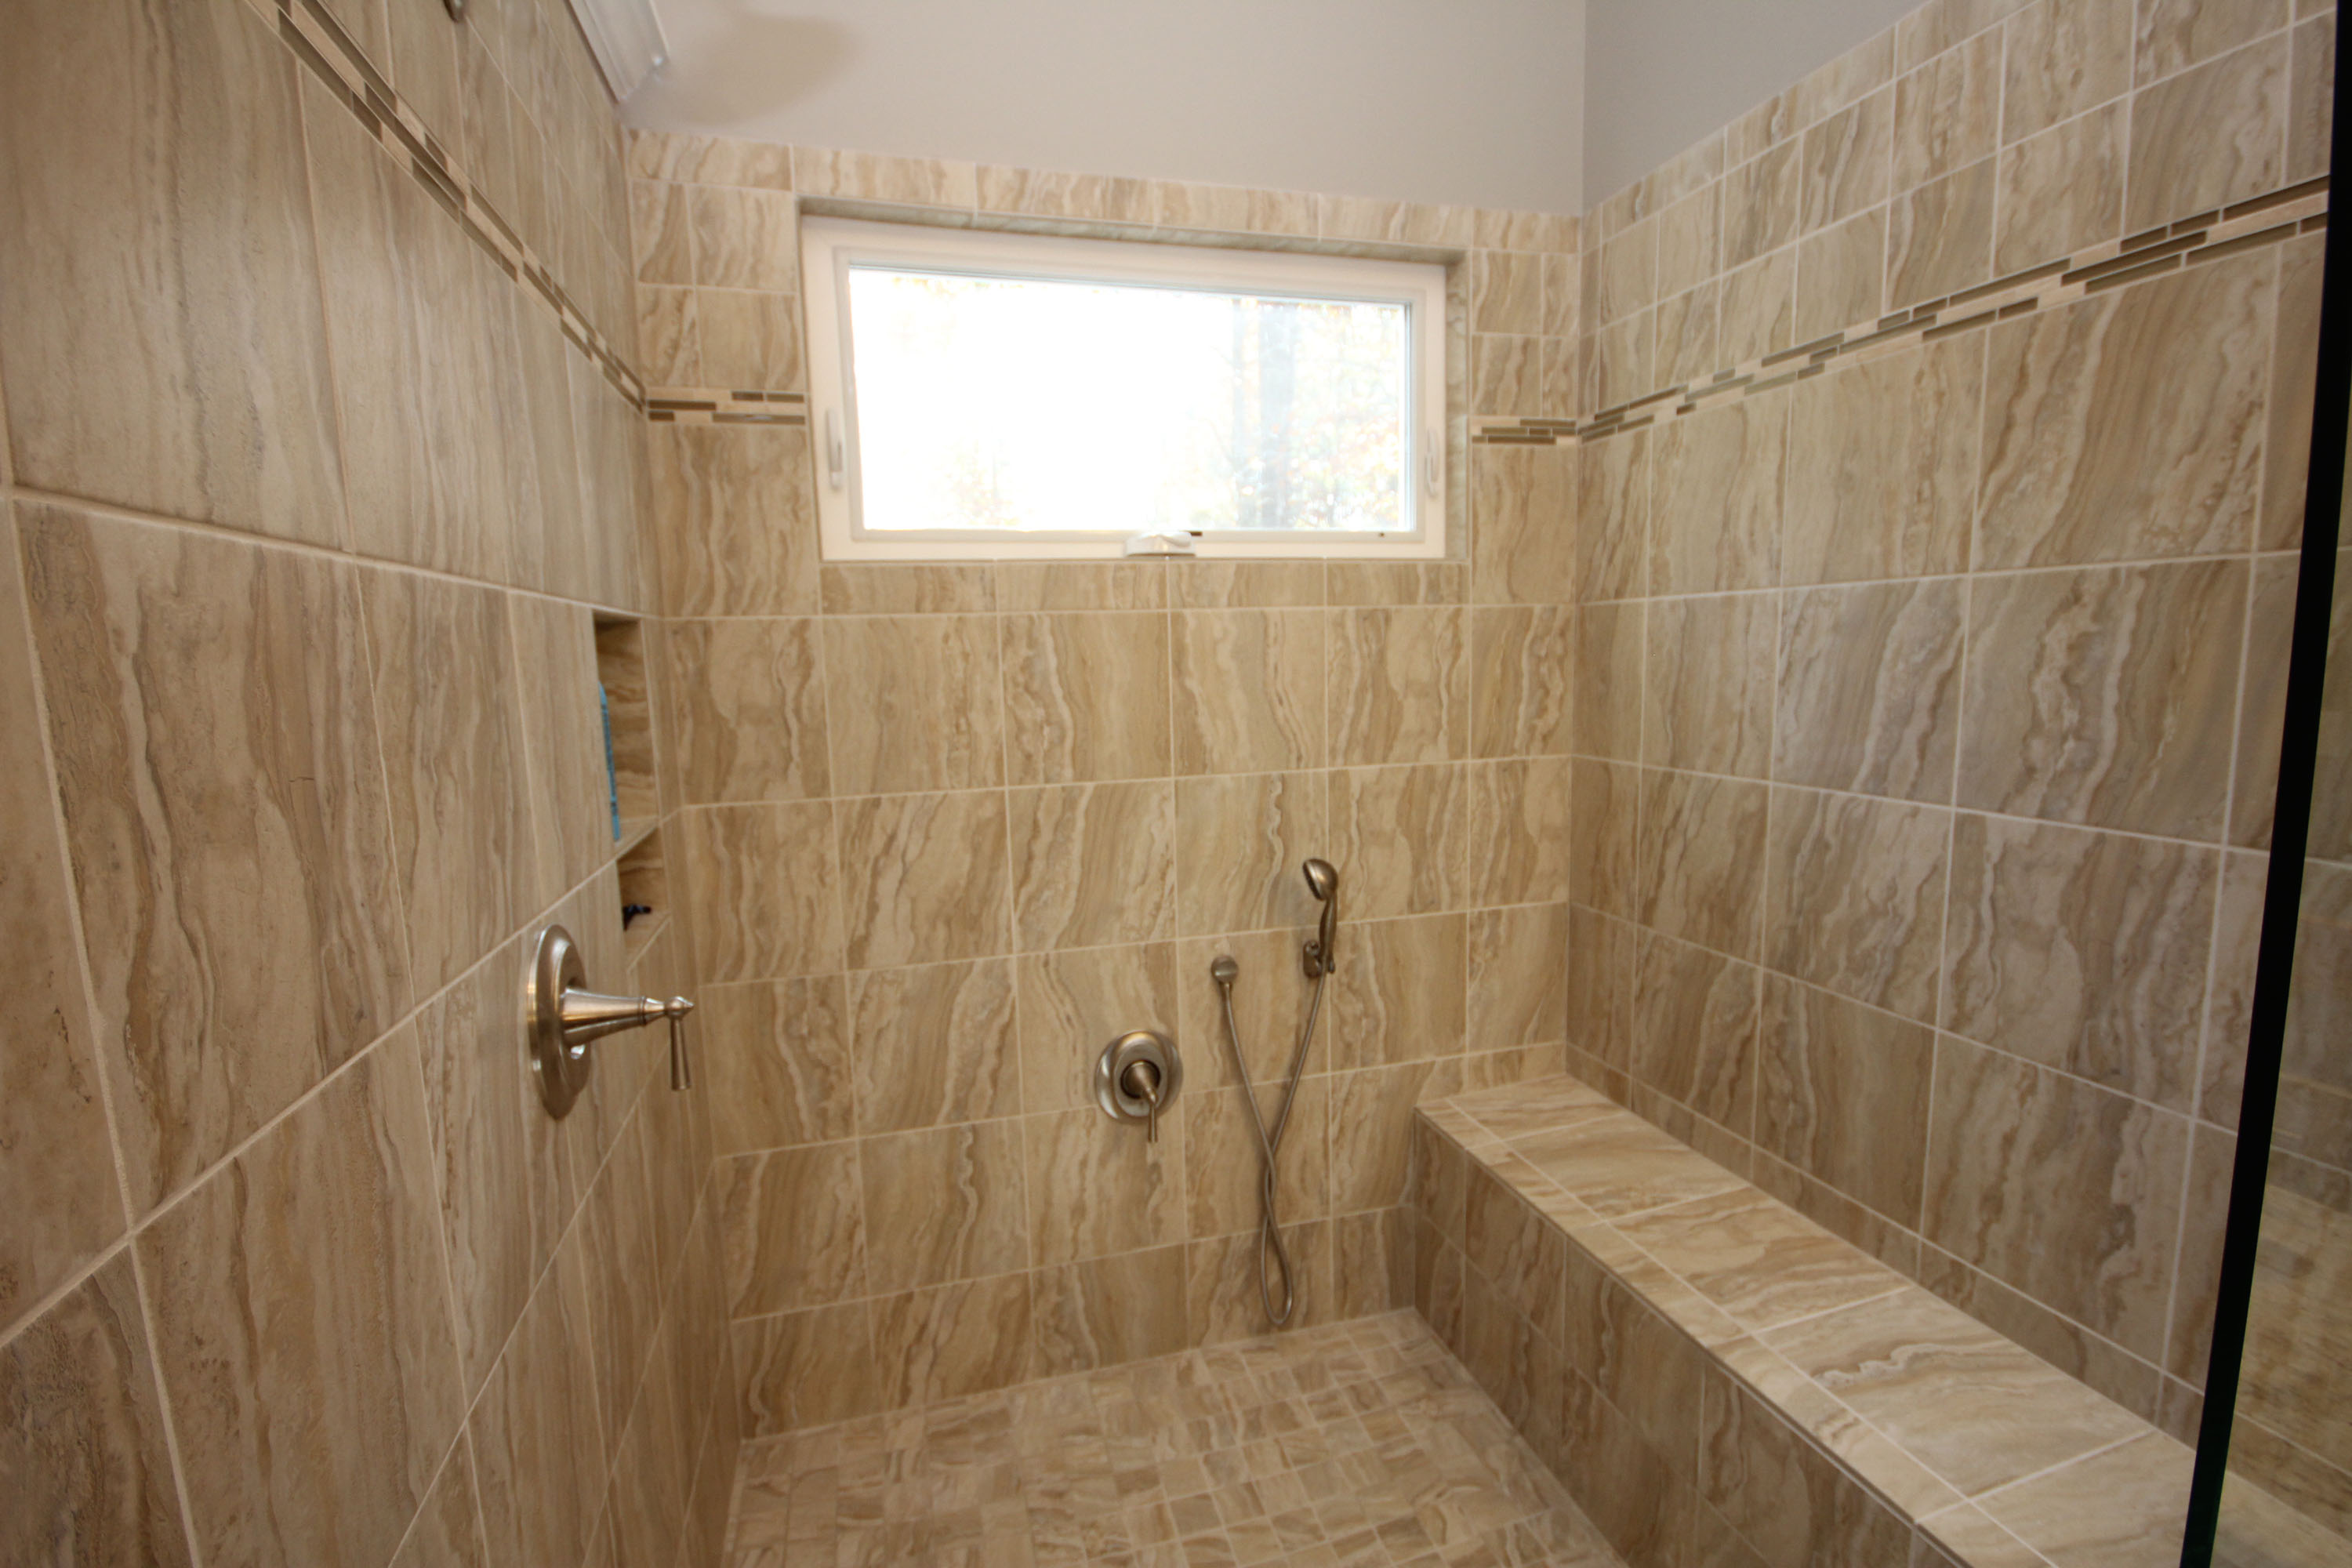 Custom Designed Showers Bath Remodeling Center Cary NC - Raleigh bathroom remodeling contractor